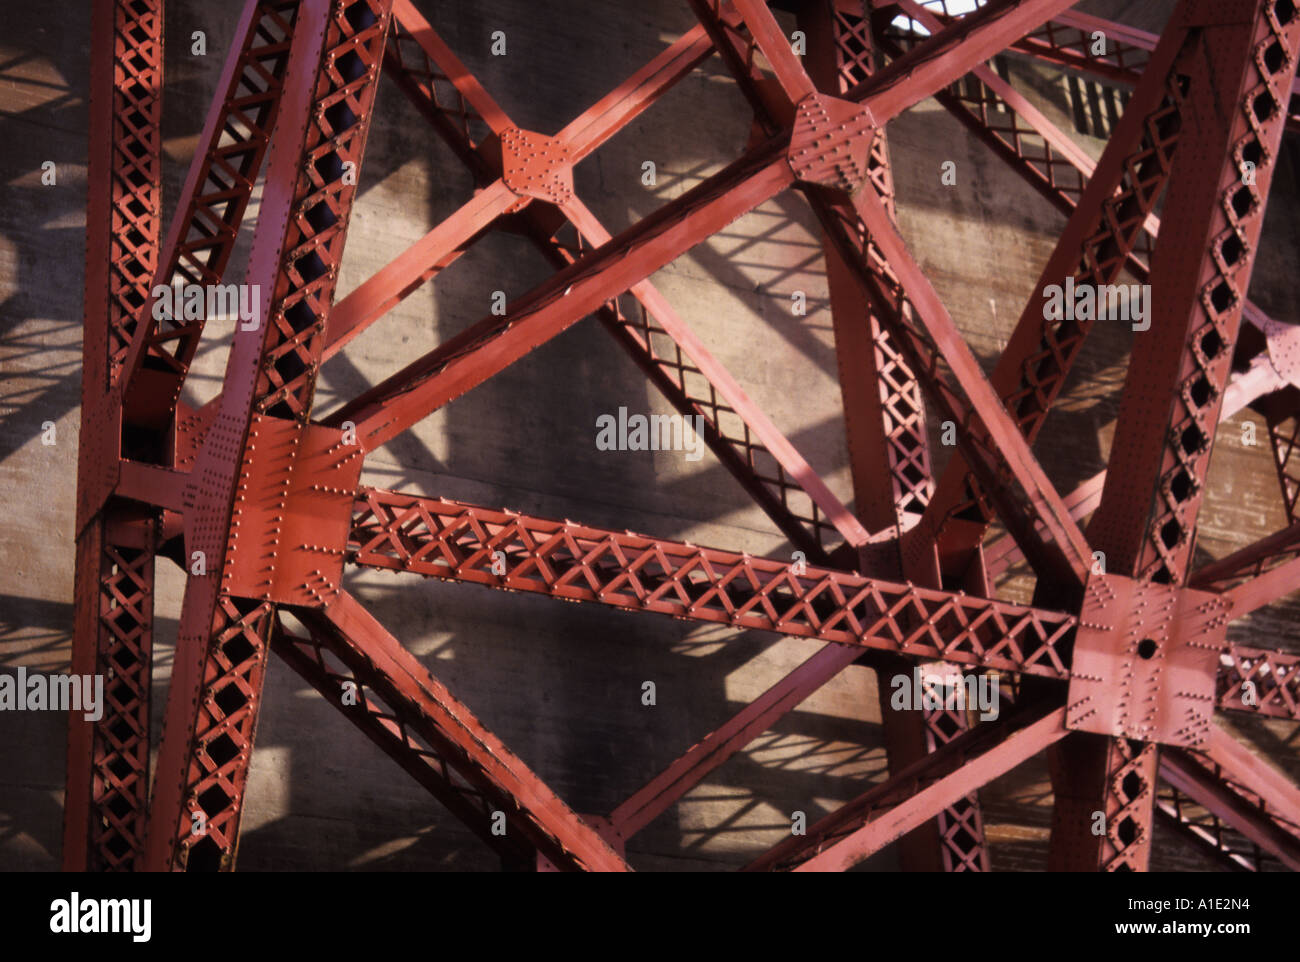 Structural detail of the Golden Gate Bridges arch San Francisco California Stock Photo